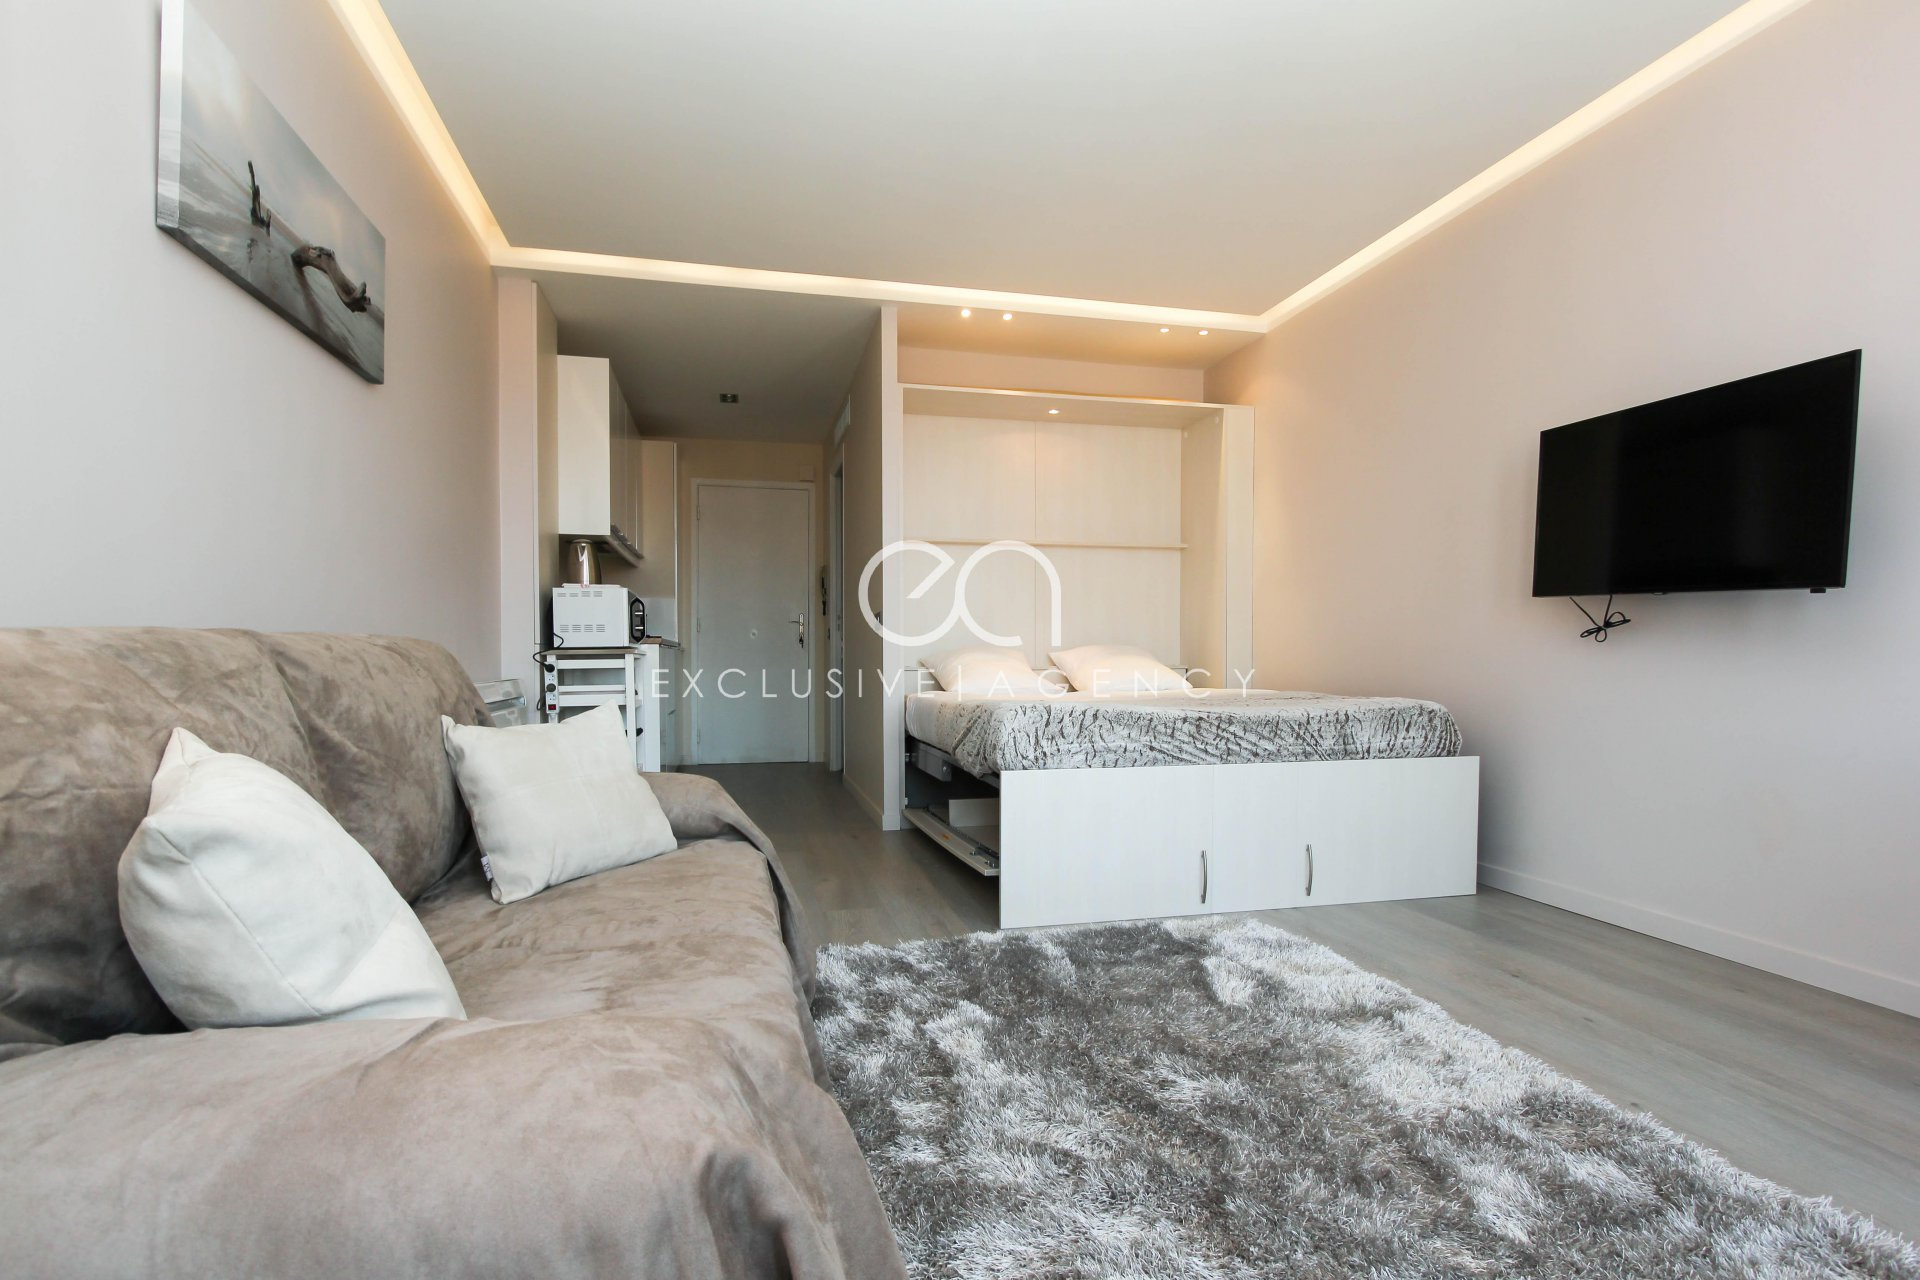 SEASONNAL RENTAL Cannes Grand Hotel 31sqm studio for 2 to 4 people